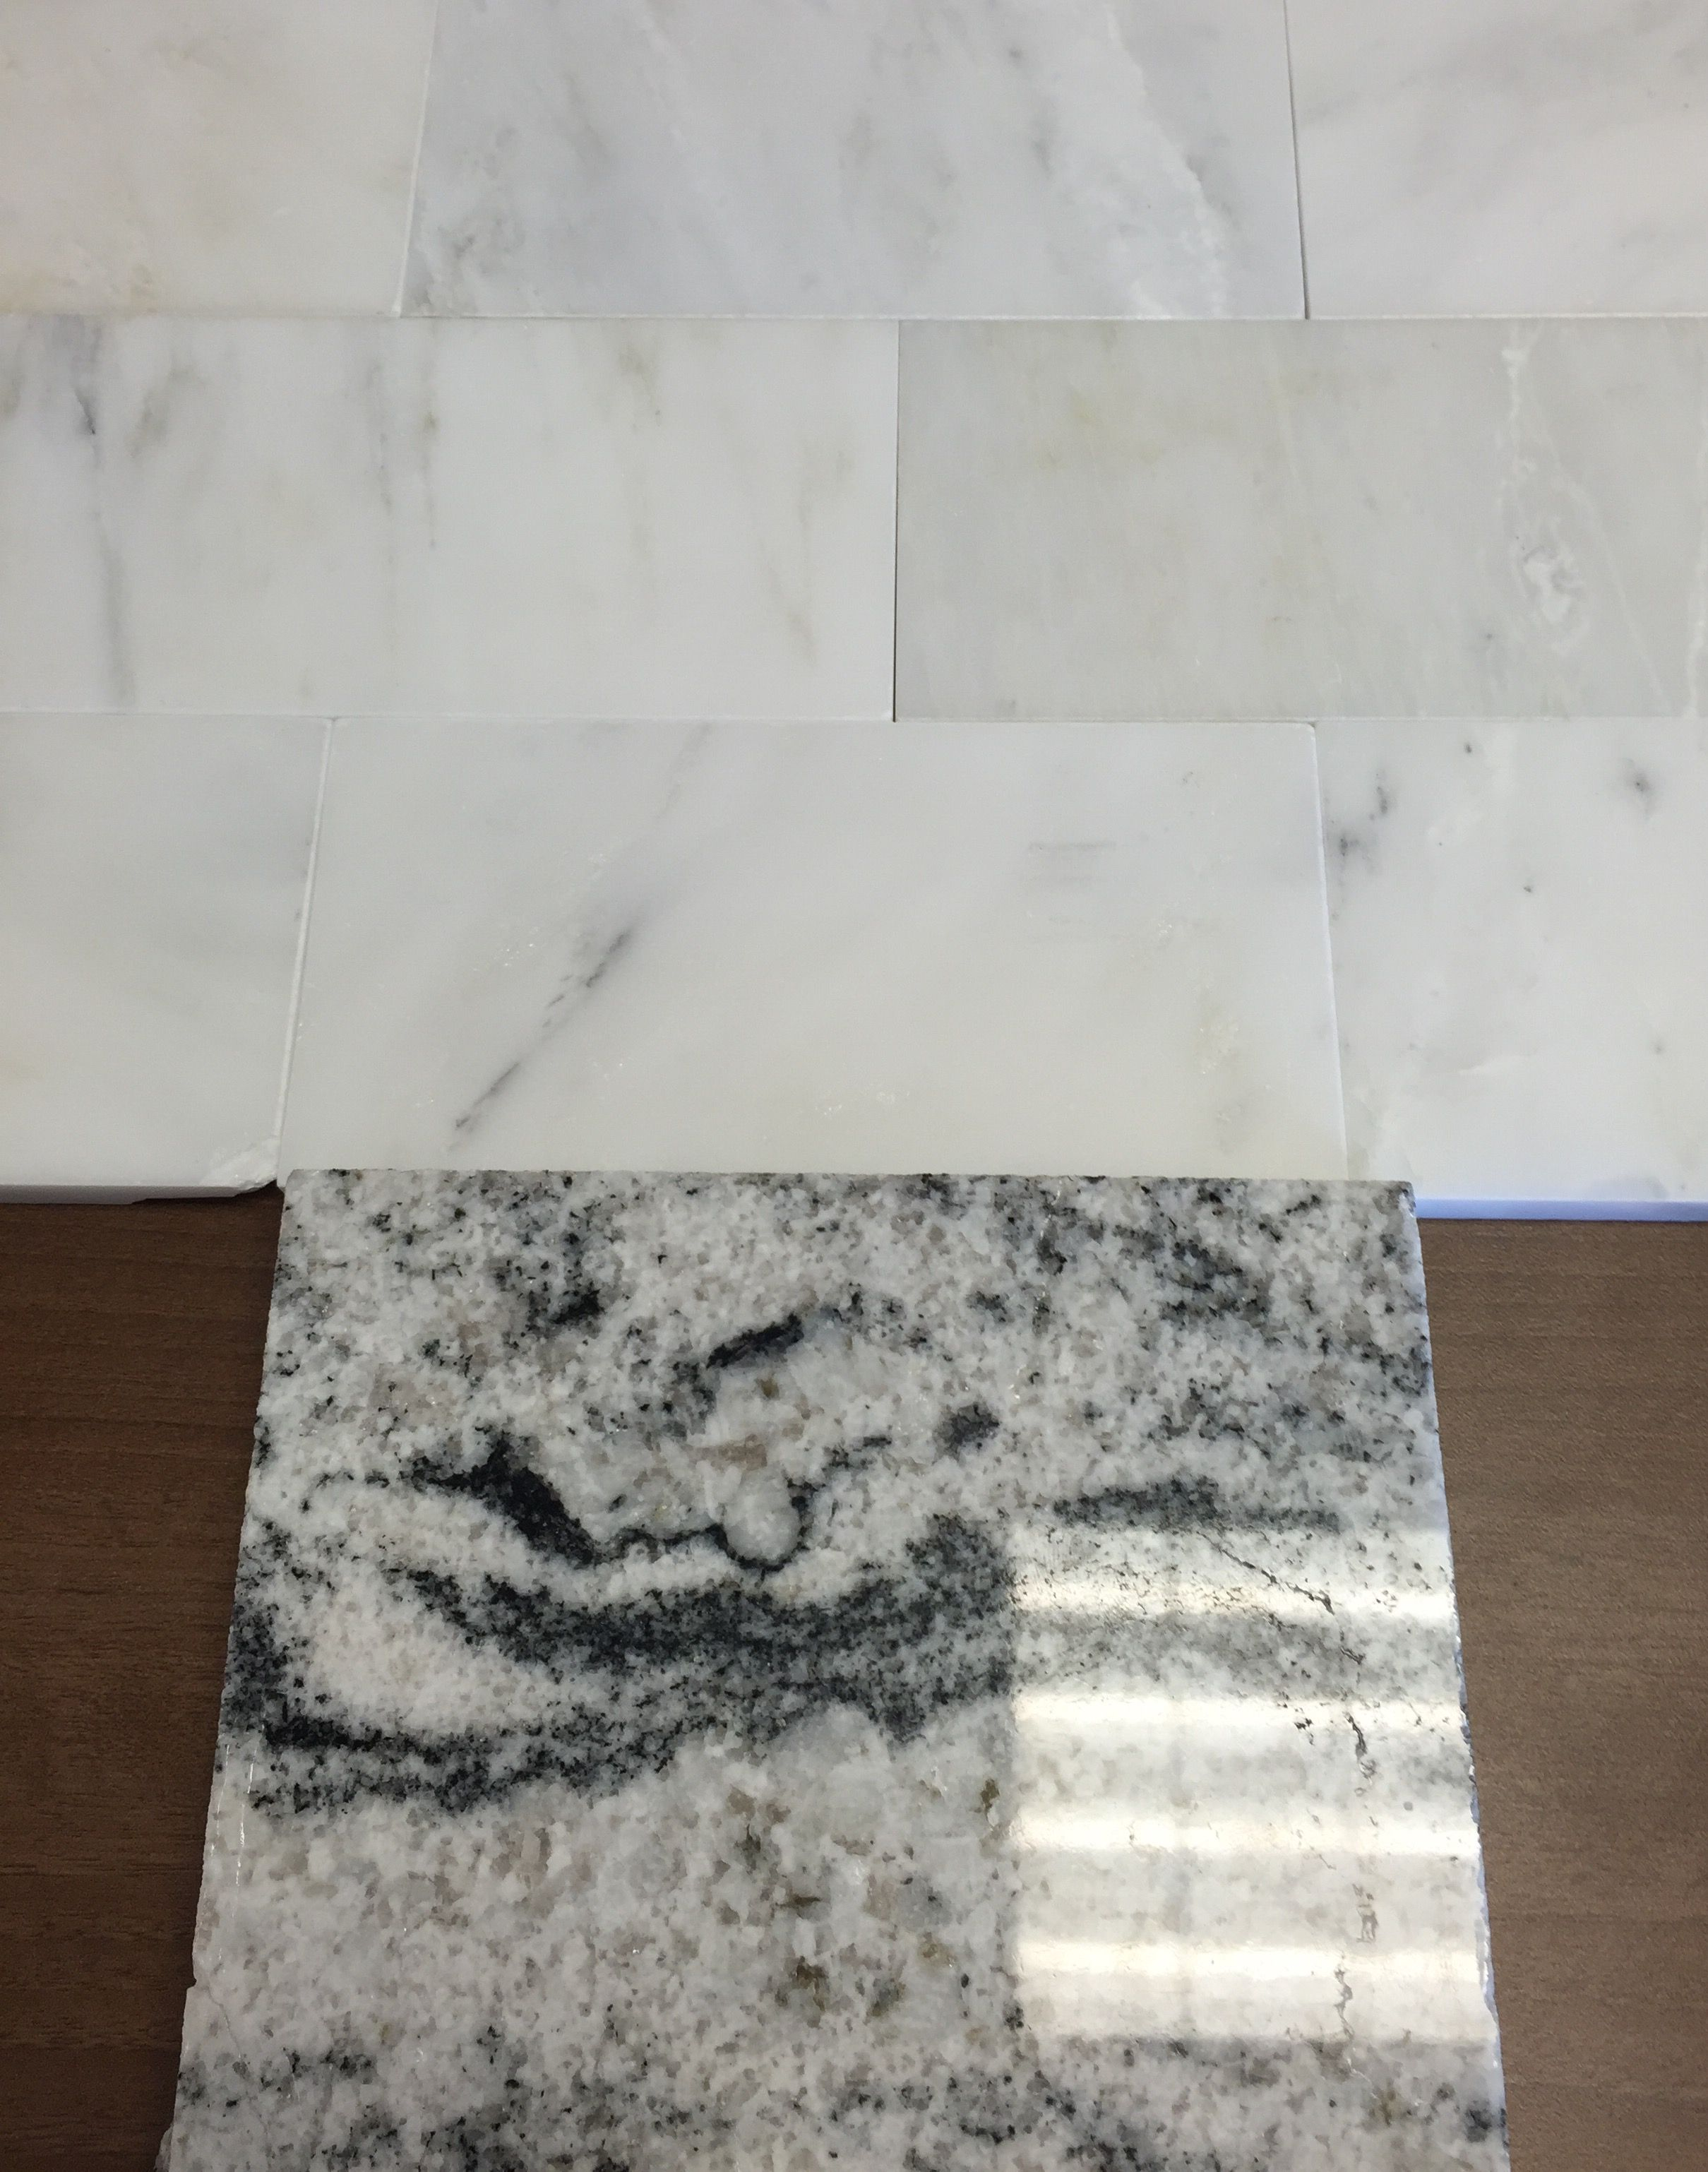 Honed Dynasty marble subway tiles for backsplash with Viscon White